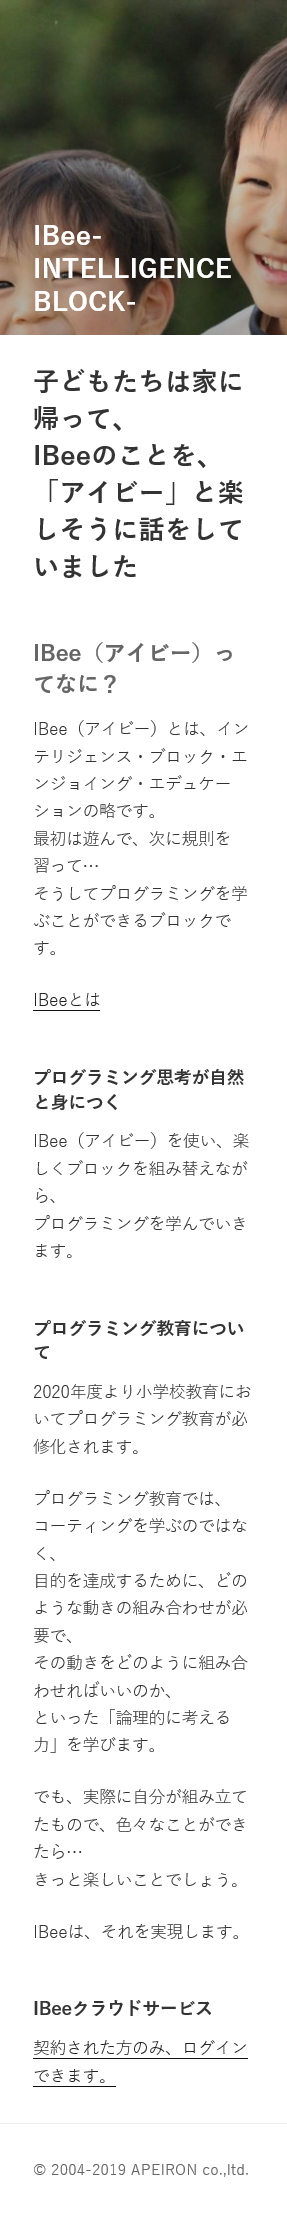 IBee-INTELLIGENCE BLOCK- スマホ版